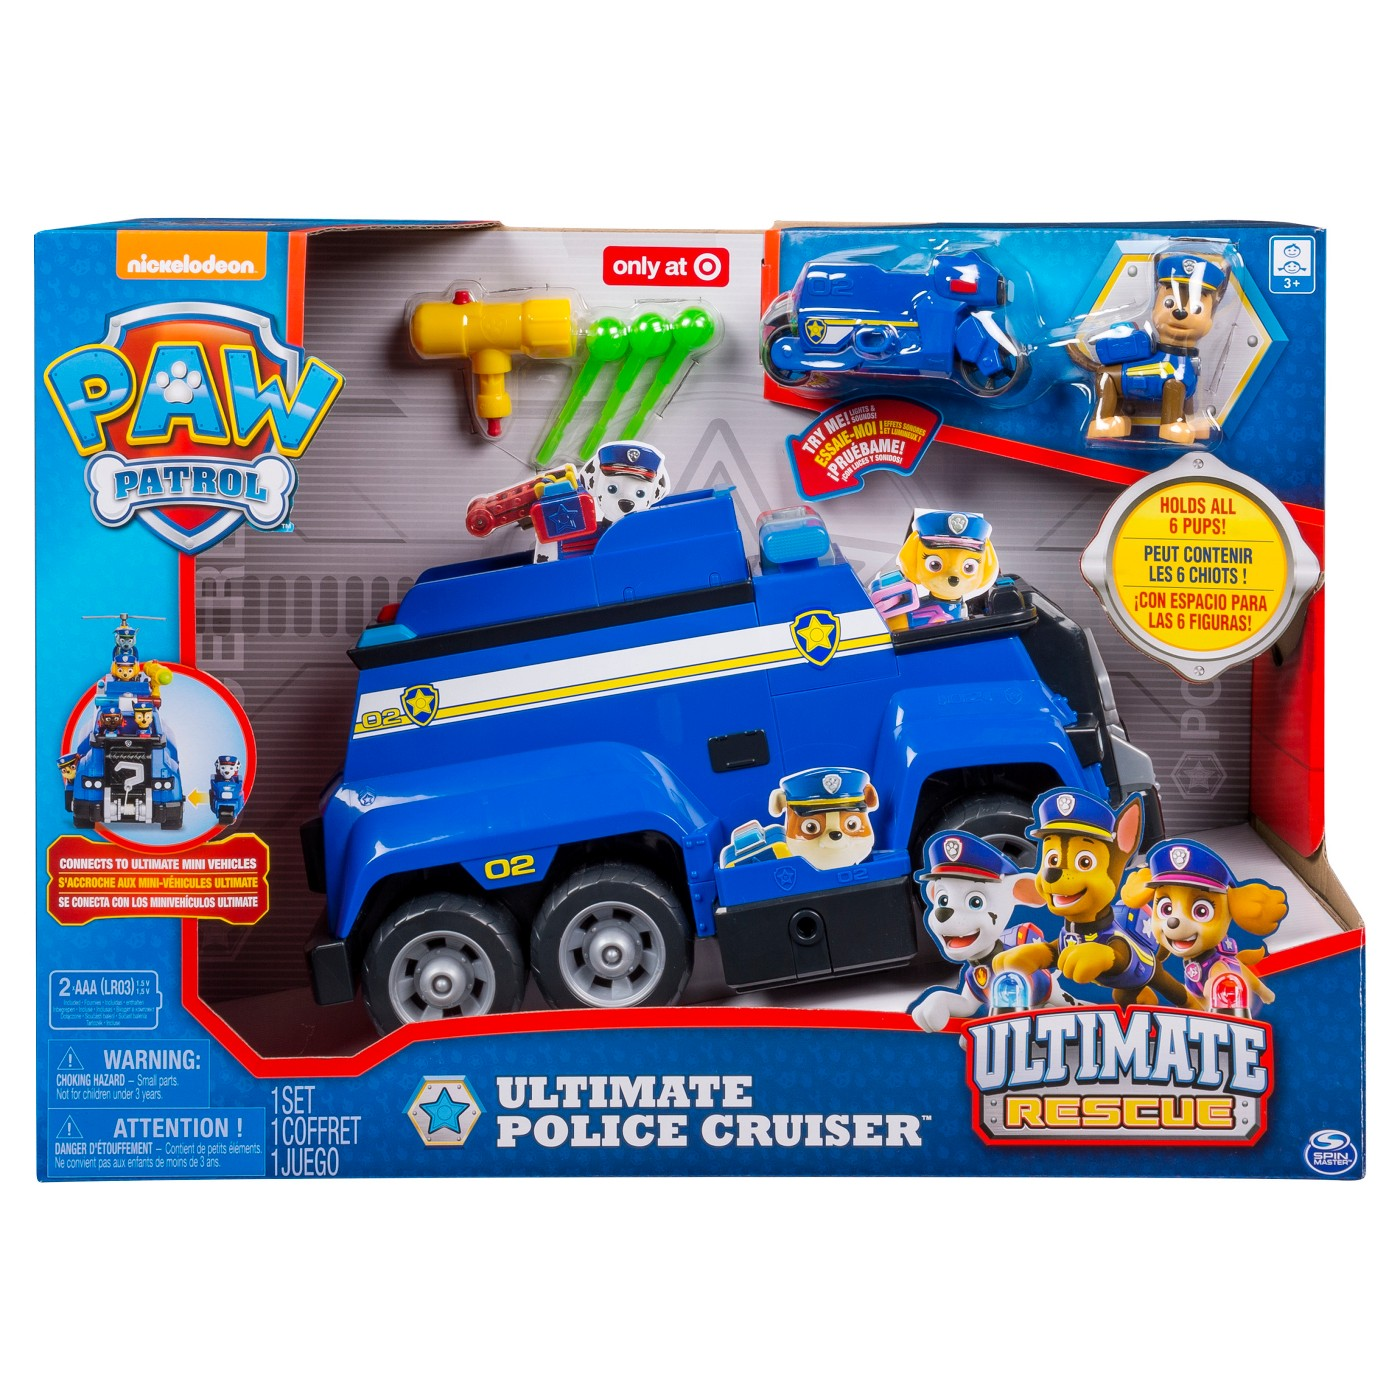 PAW Patrol Police Rescue Deluxe Chase Ultimate Cruiser - image 2 of 8